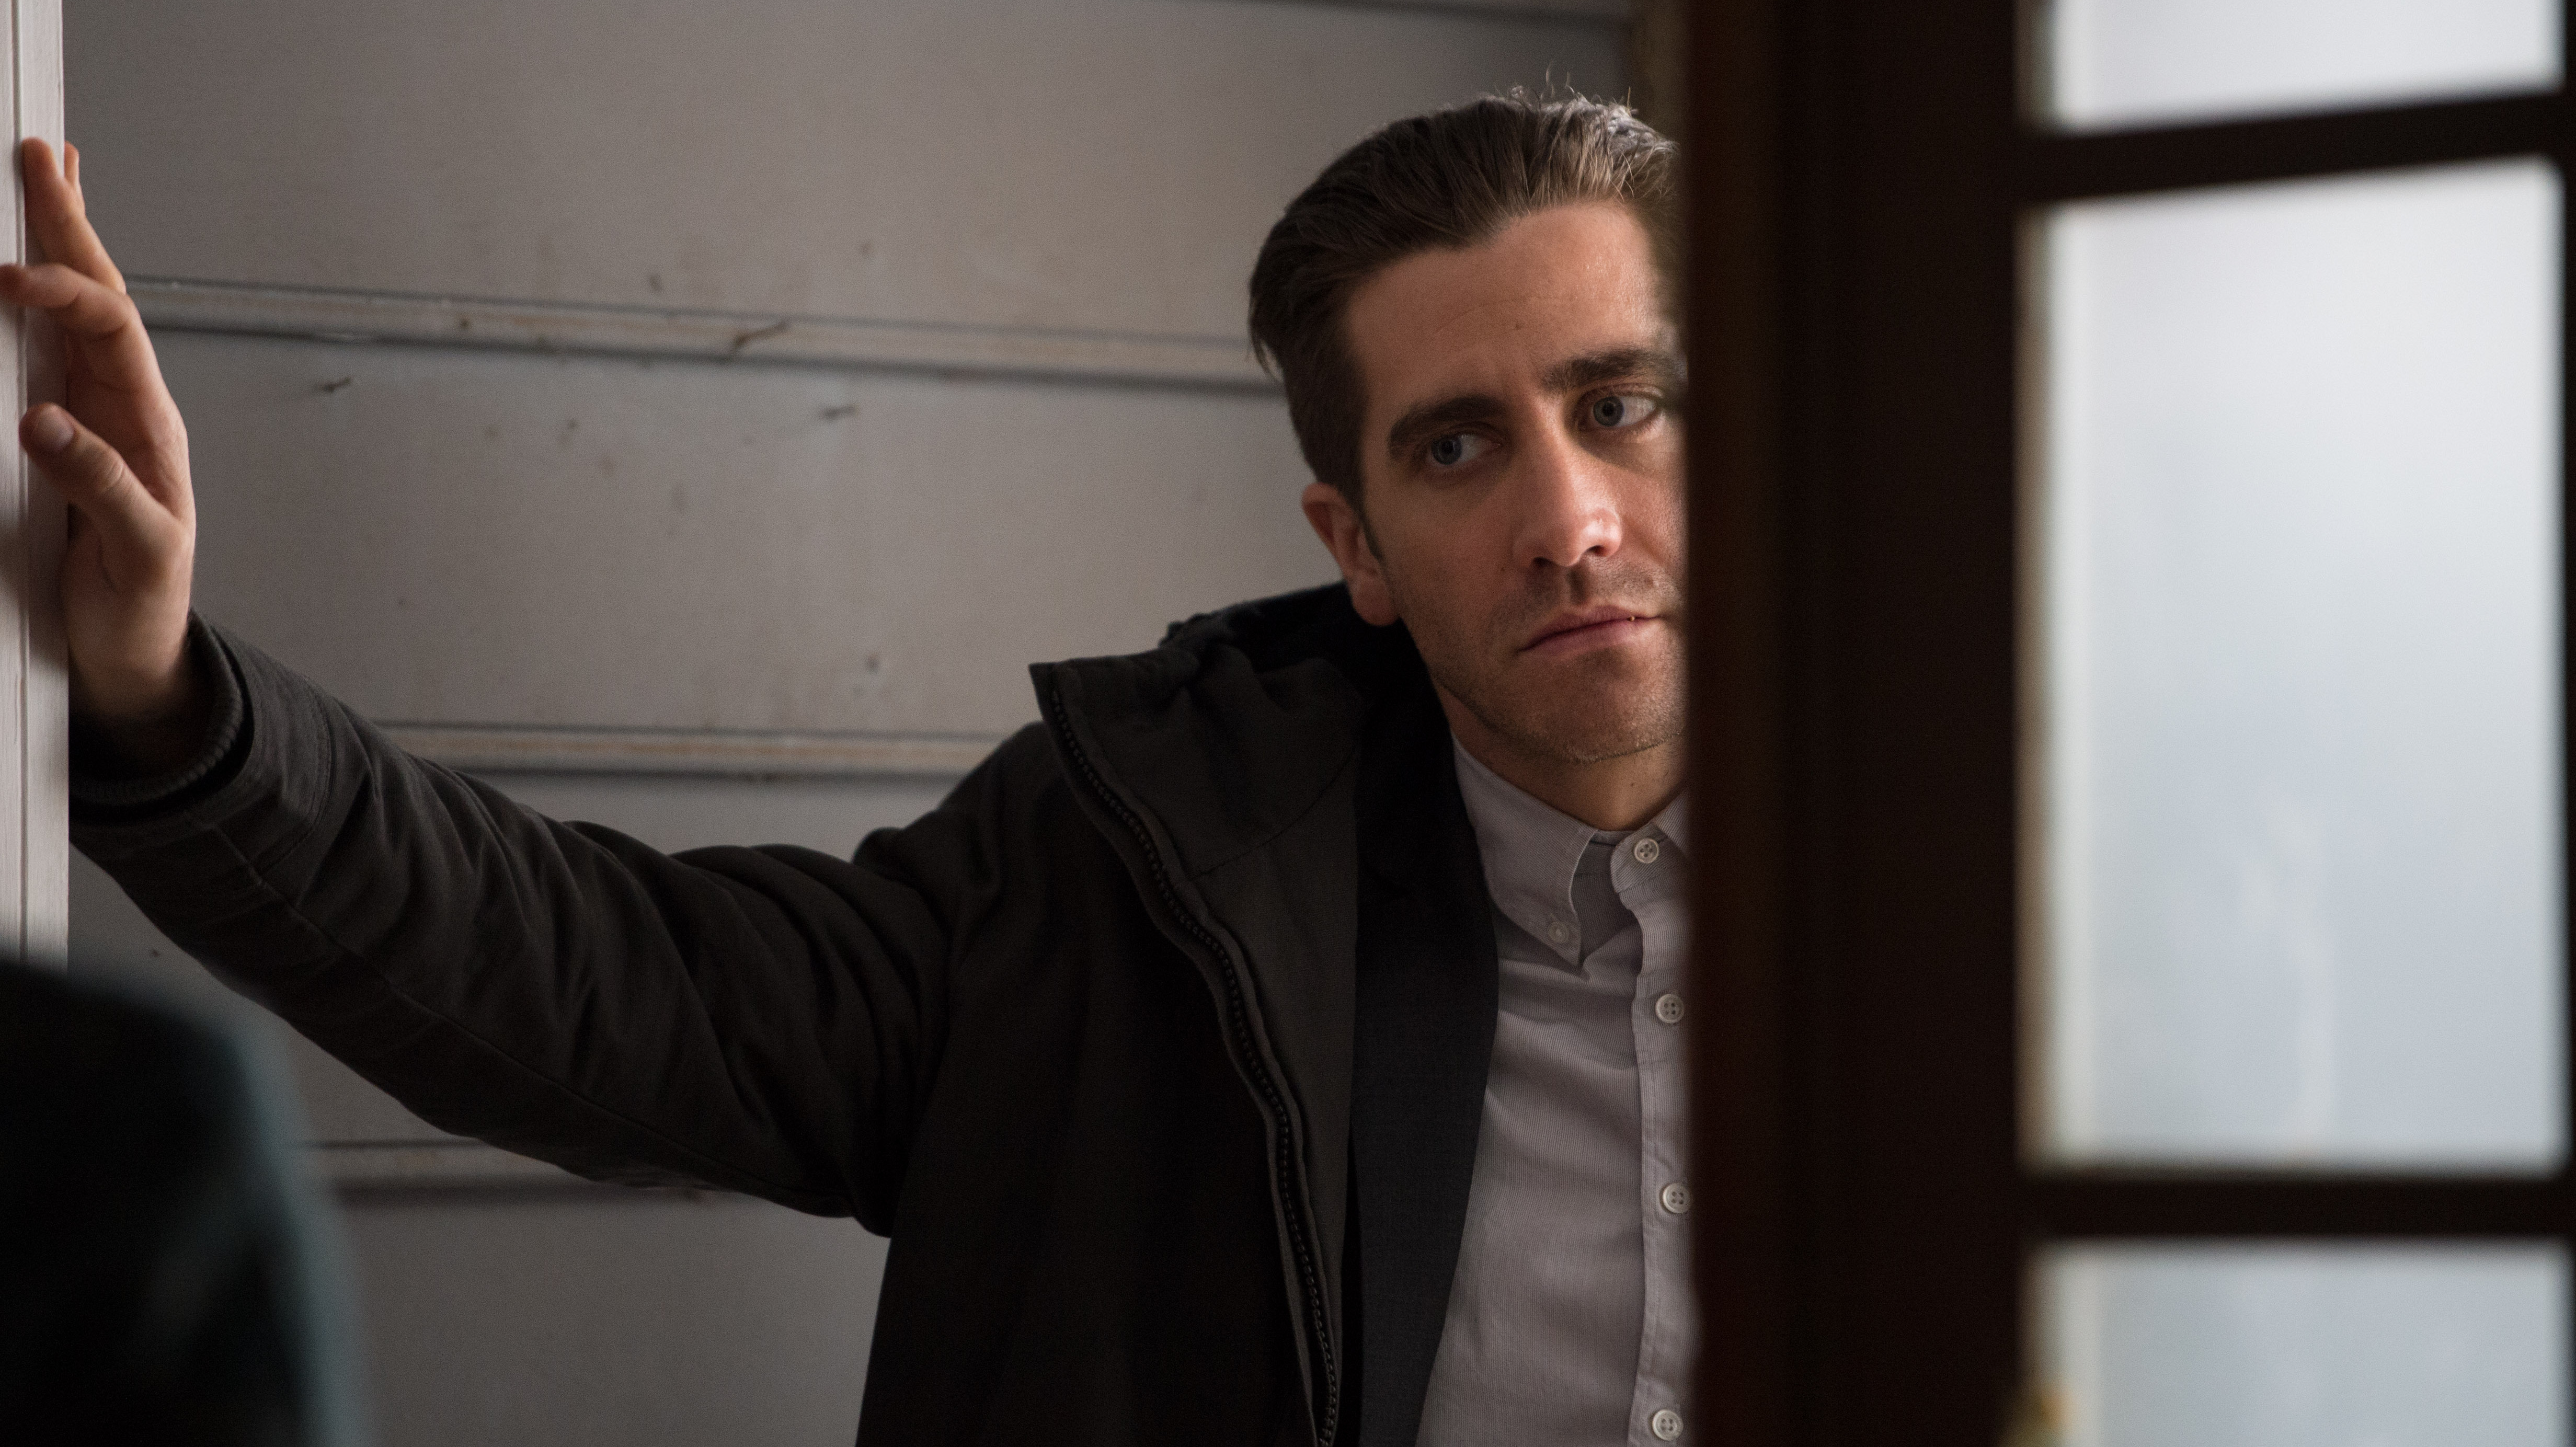 Jake Gyllenhaal Going After What S Real Ncpr News